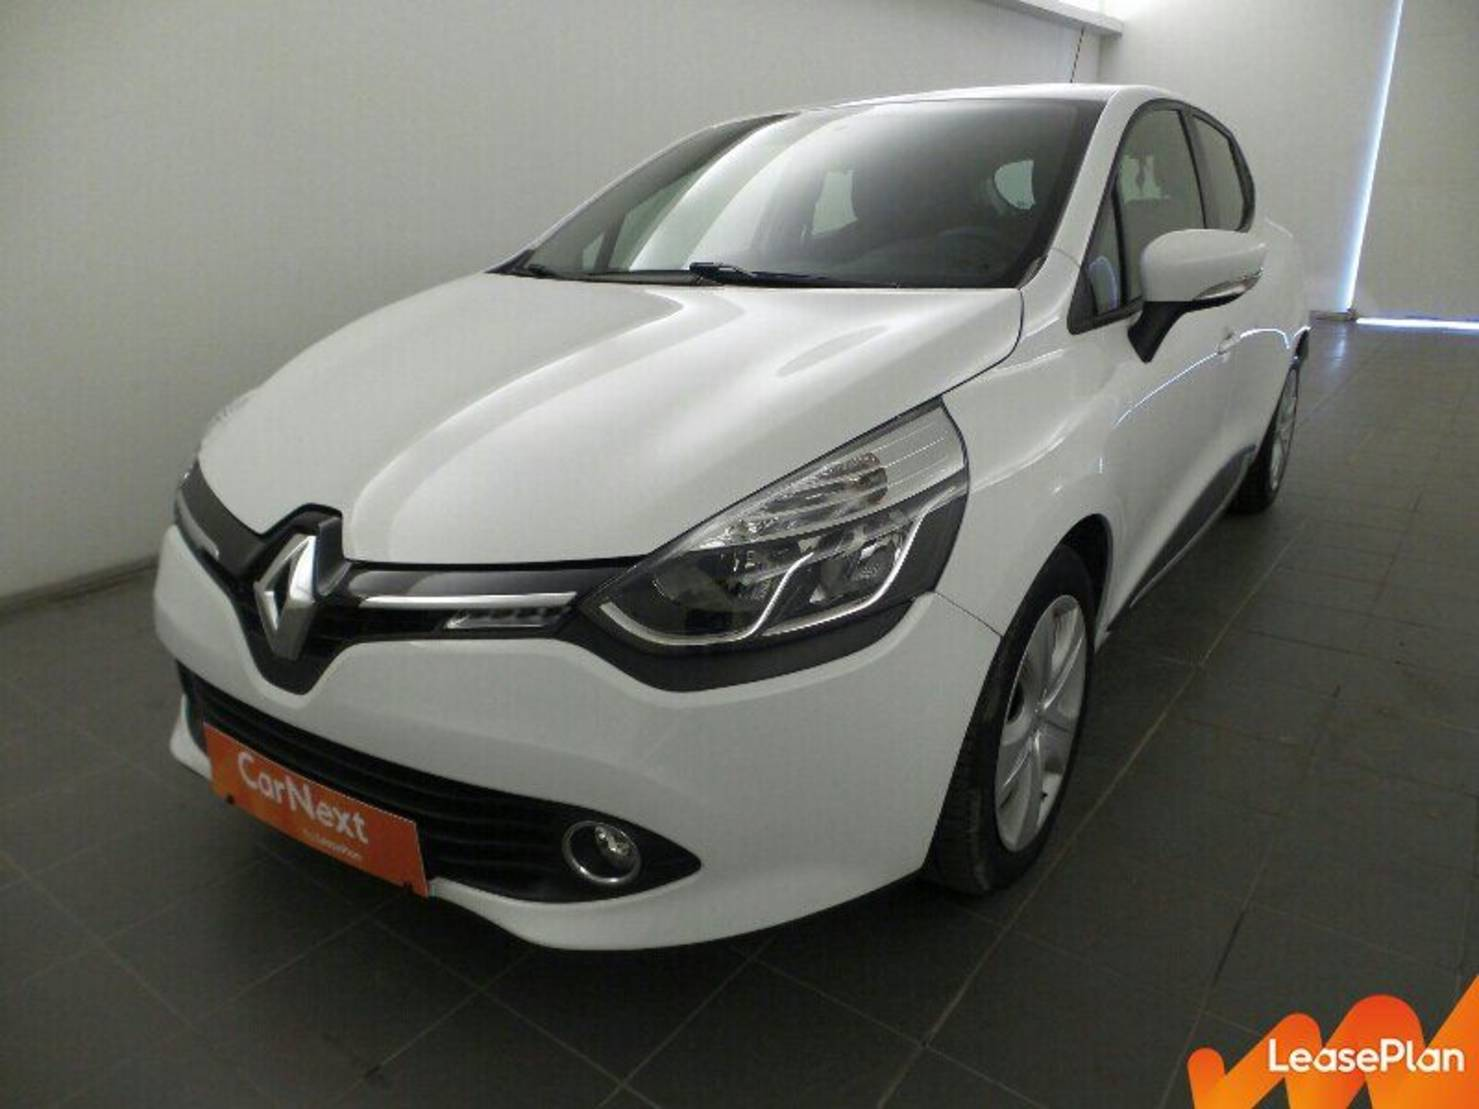 Renault Clio IV dCi 90 Business Energy eco2 82g detail1